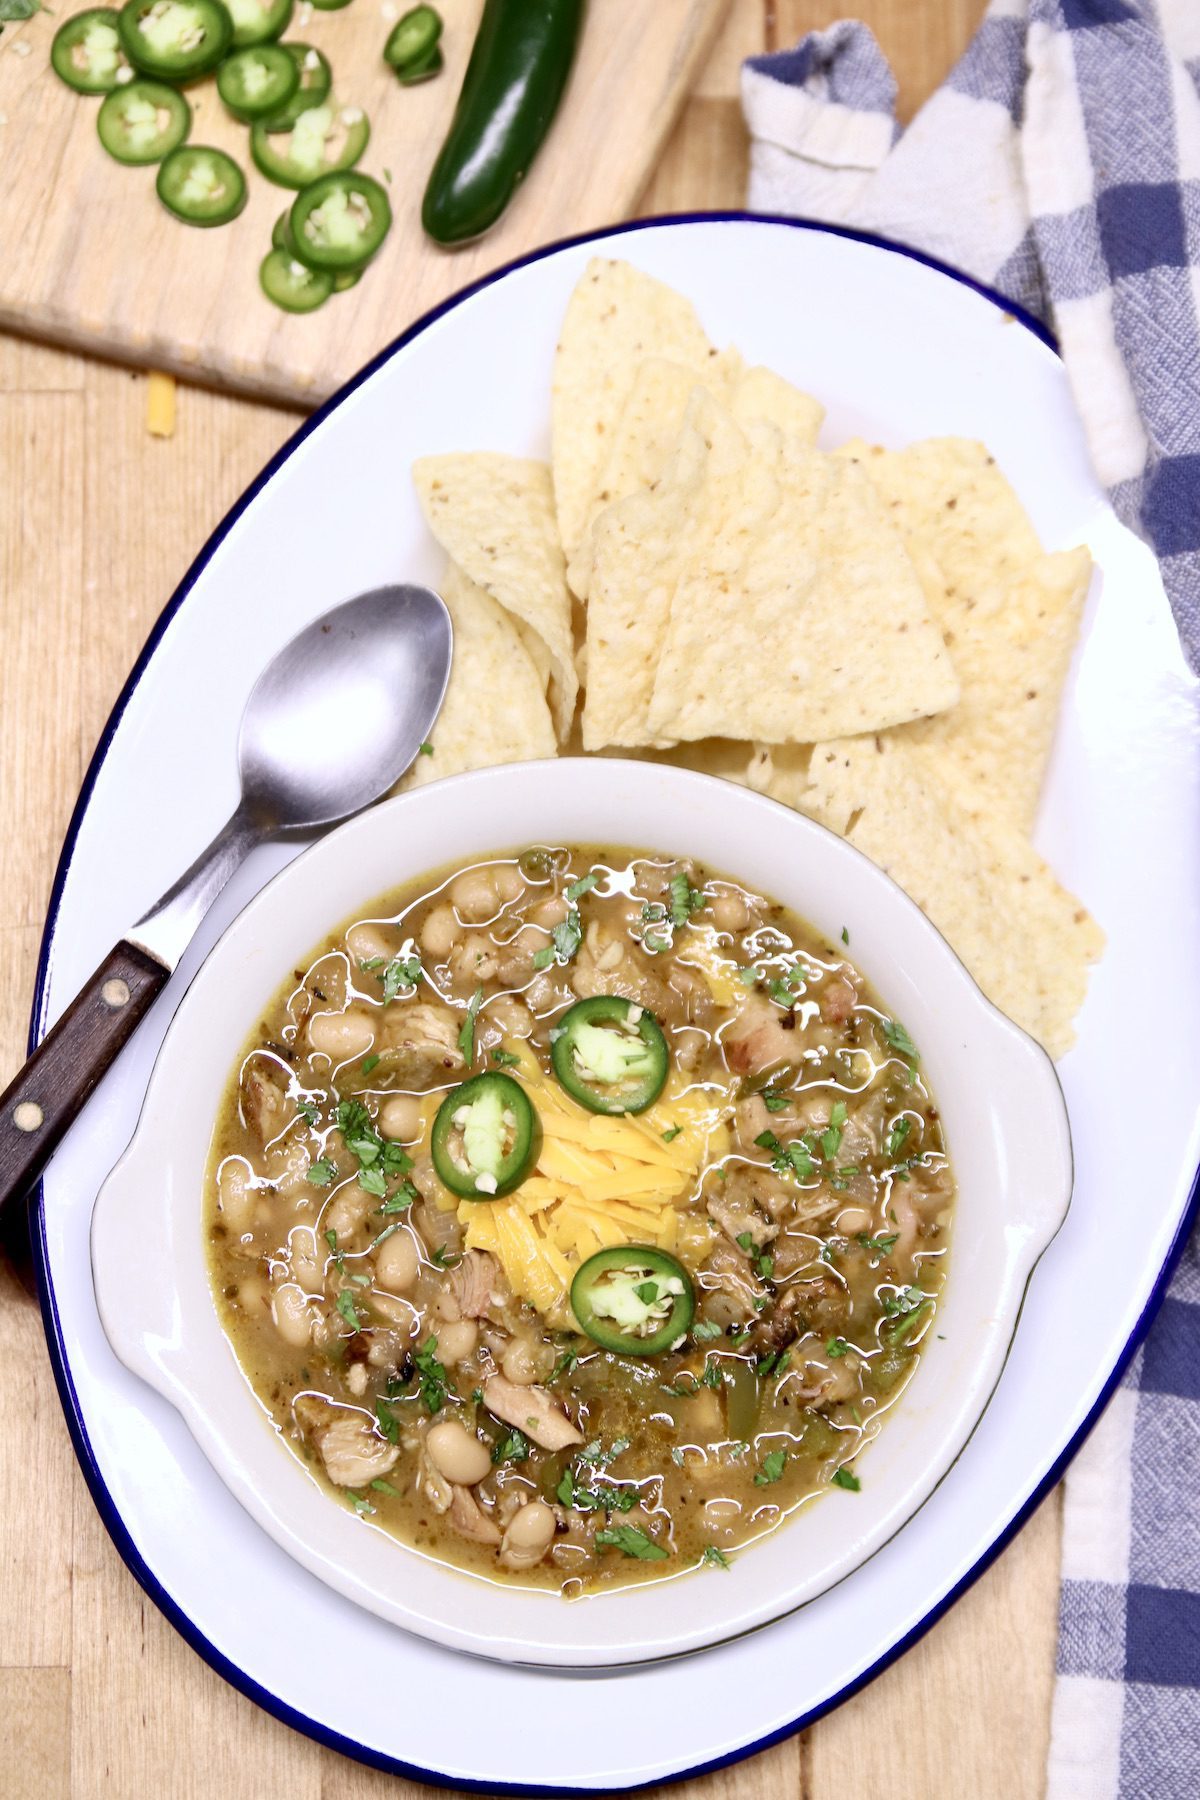 platter with bowl of chicken chili, tortilla chips